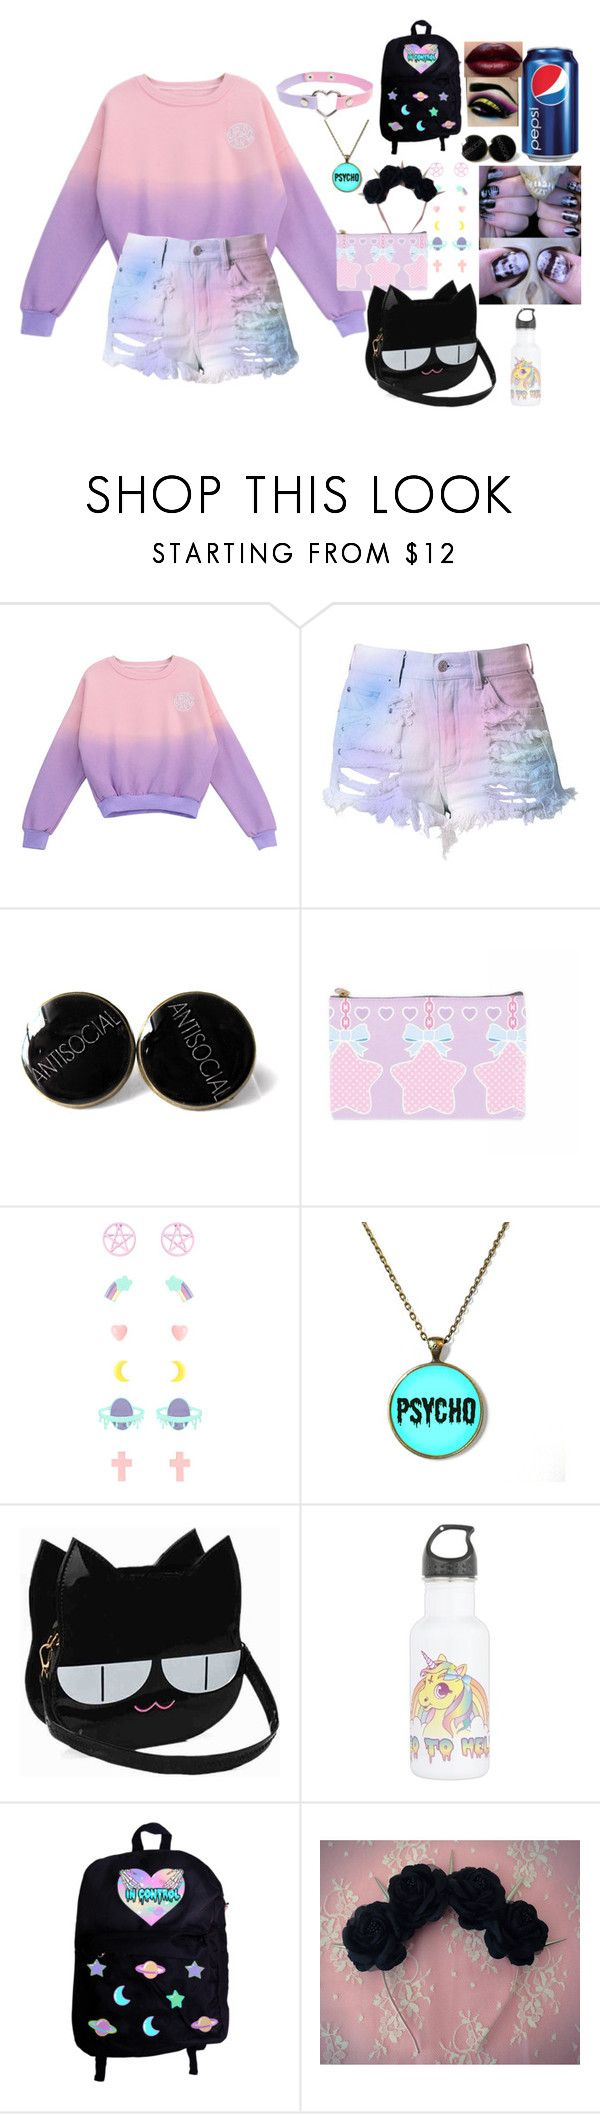 """pastel goth aesthetic / 1.29.16"" by hesitantalienfashion ❤ liked on Polyvore featuring Chicnova Fashion and Cotton Candy"